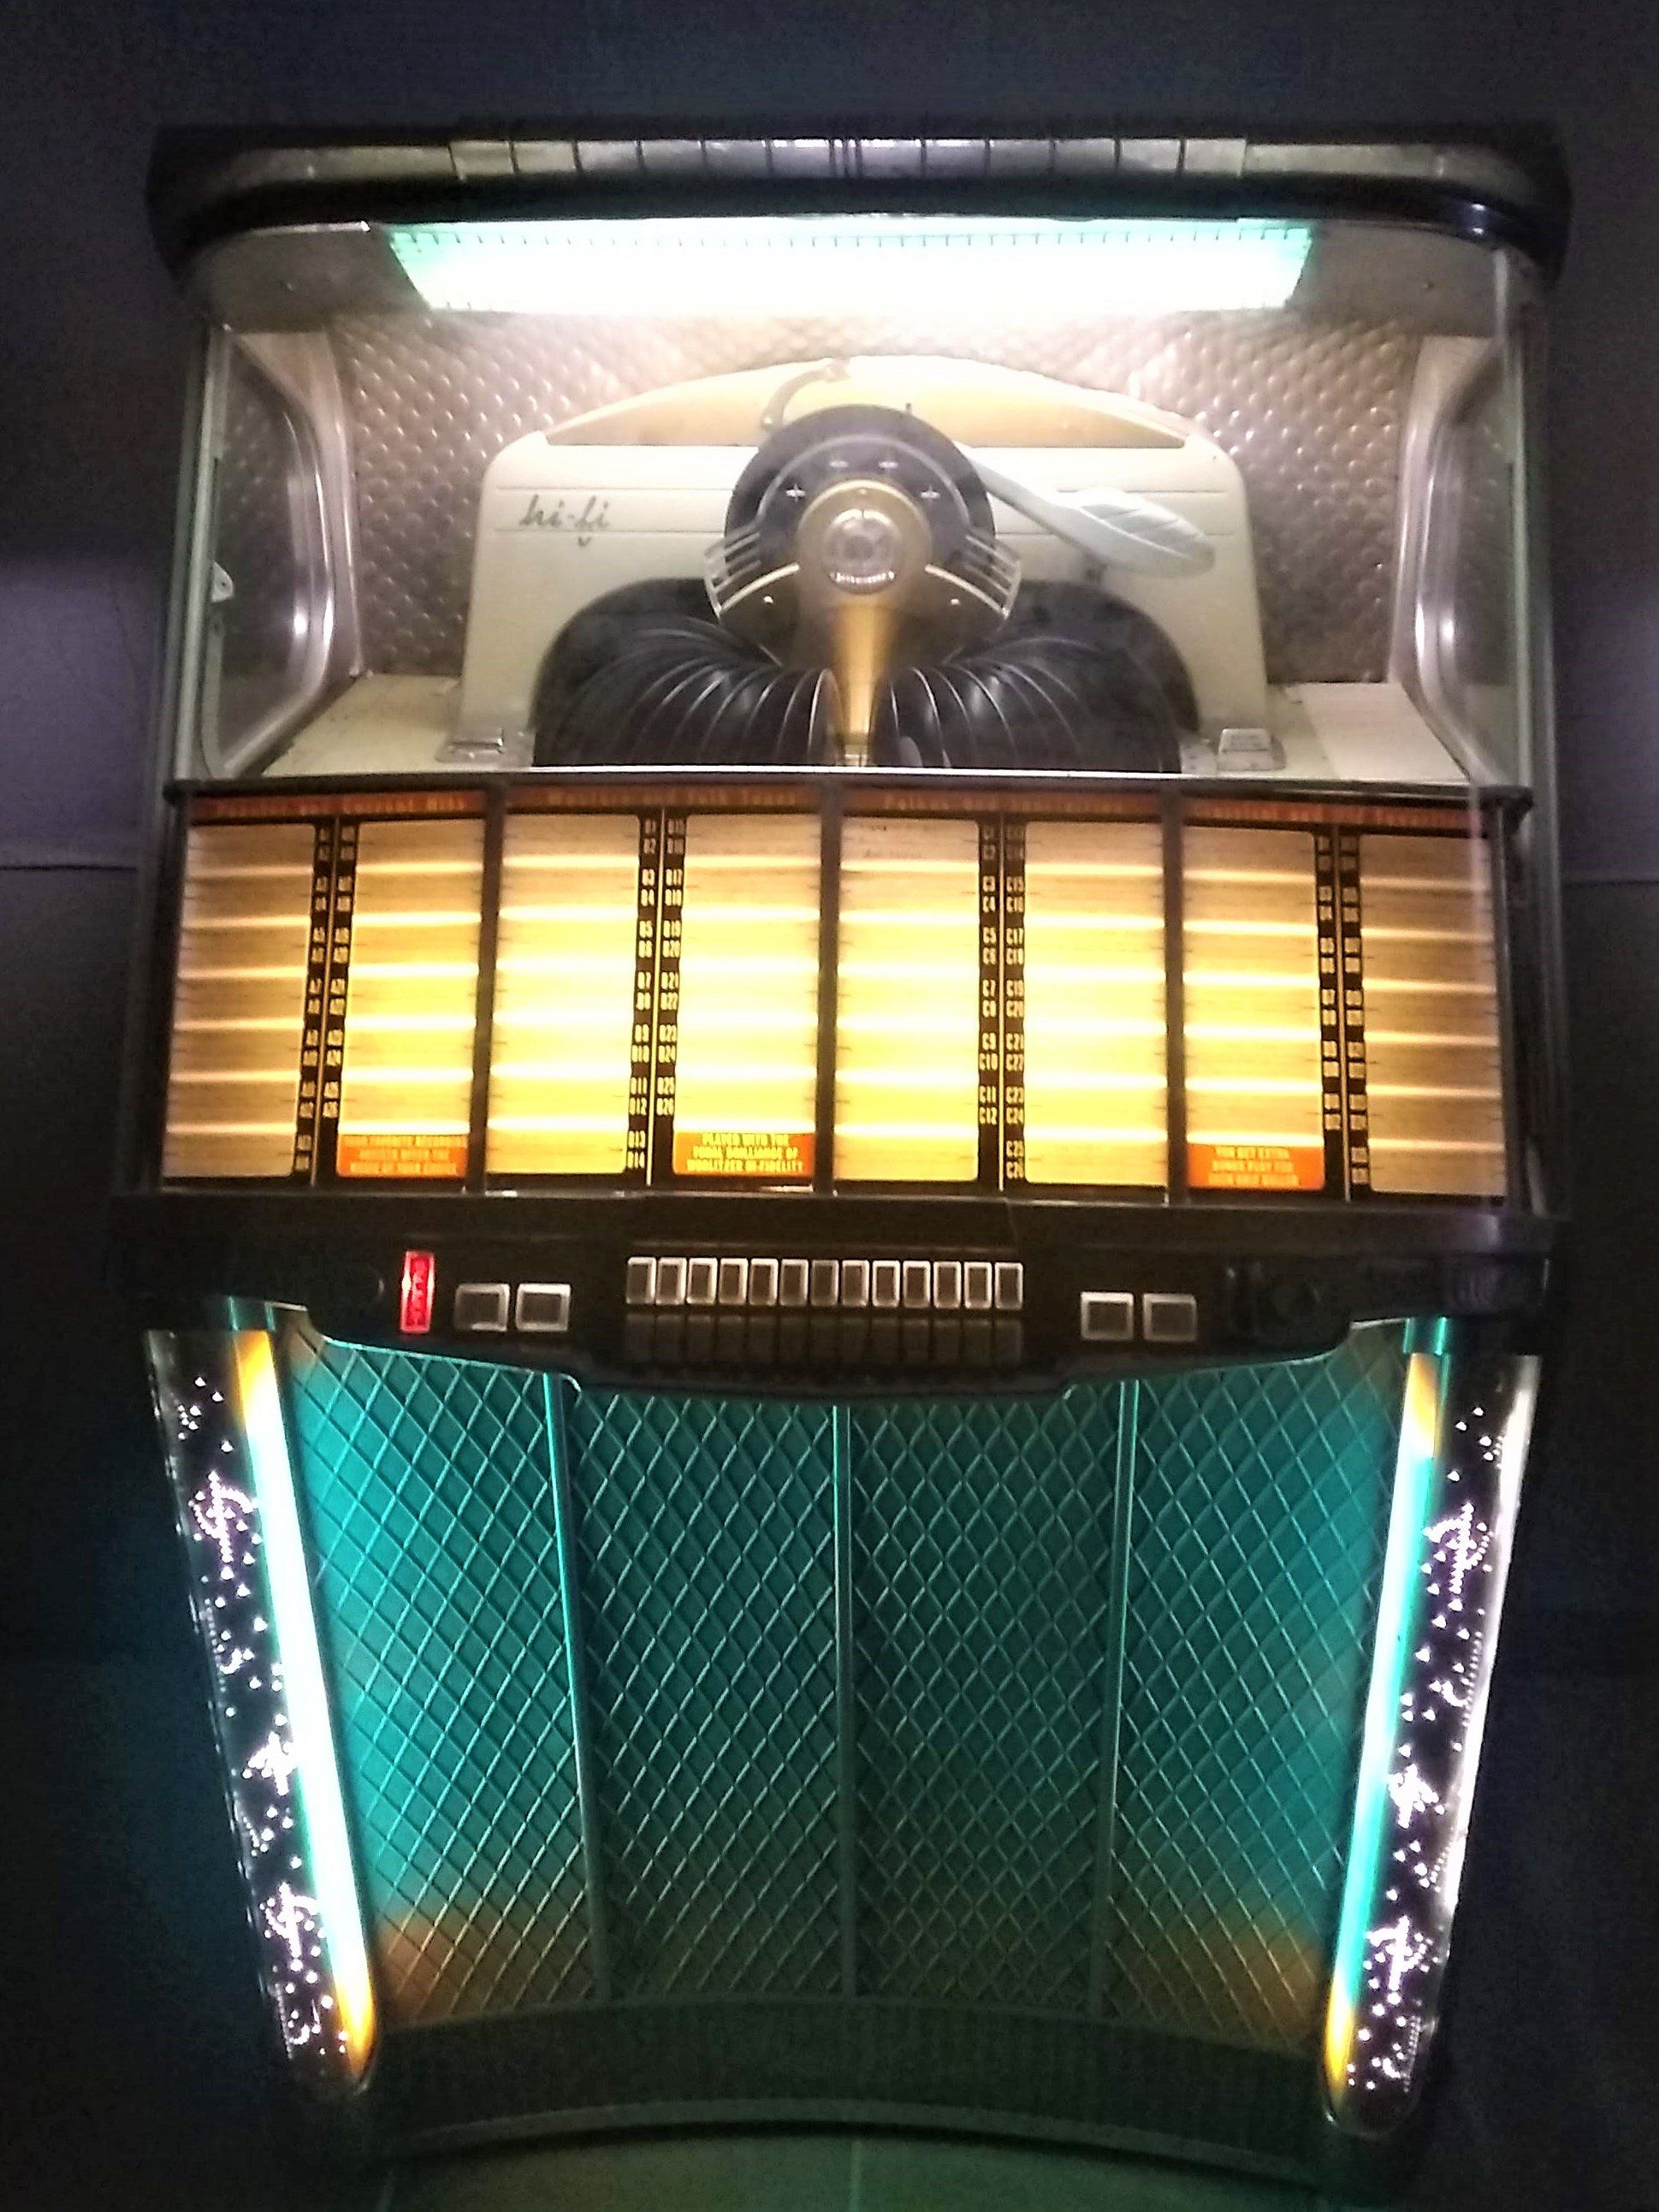 https://0201.nccdn.net/1_2/000/000/0e0/b2c/jukebox-2104-wurlitzer.jpg